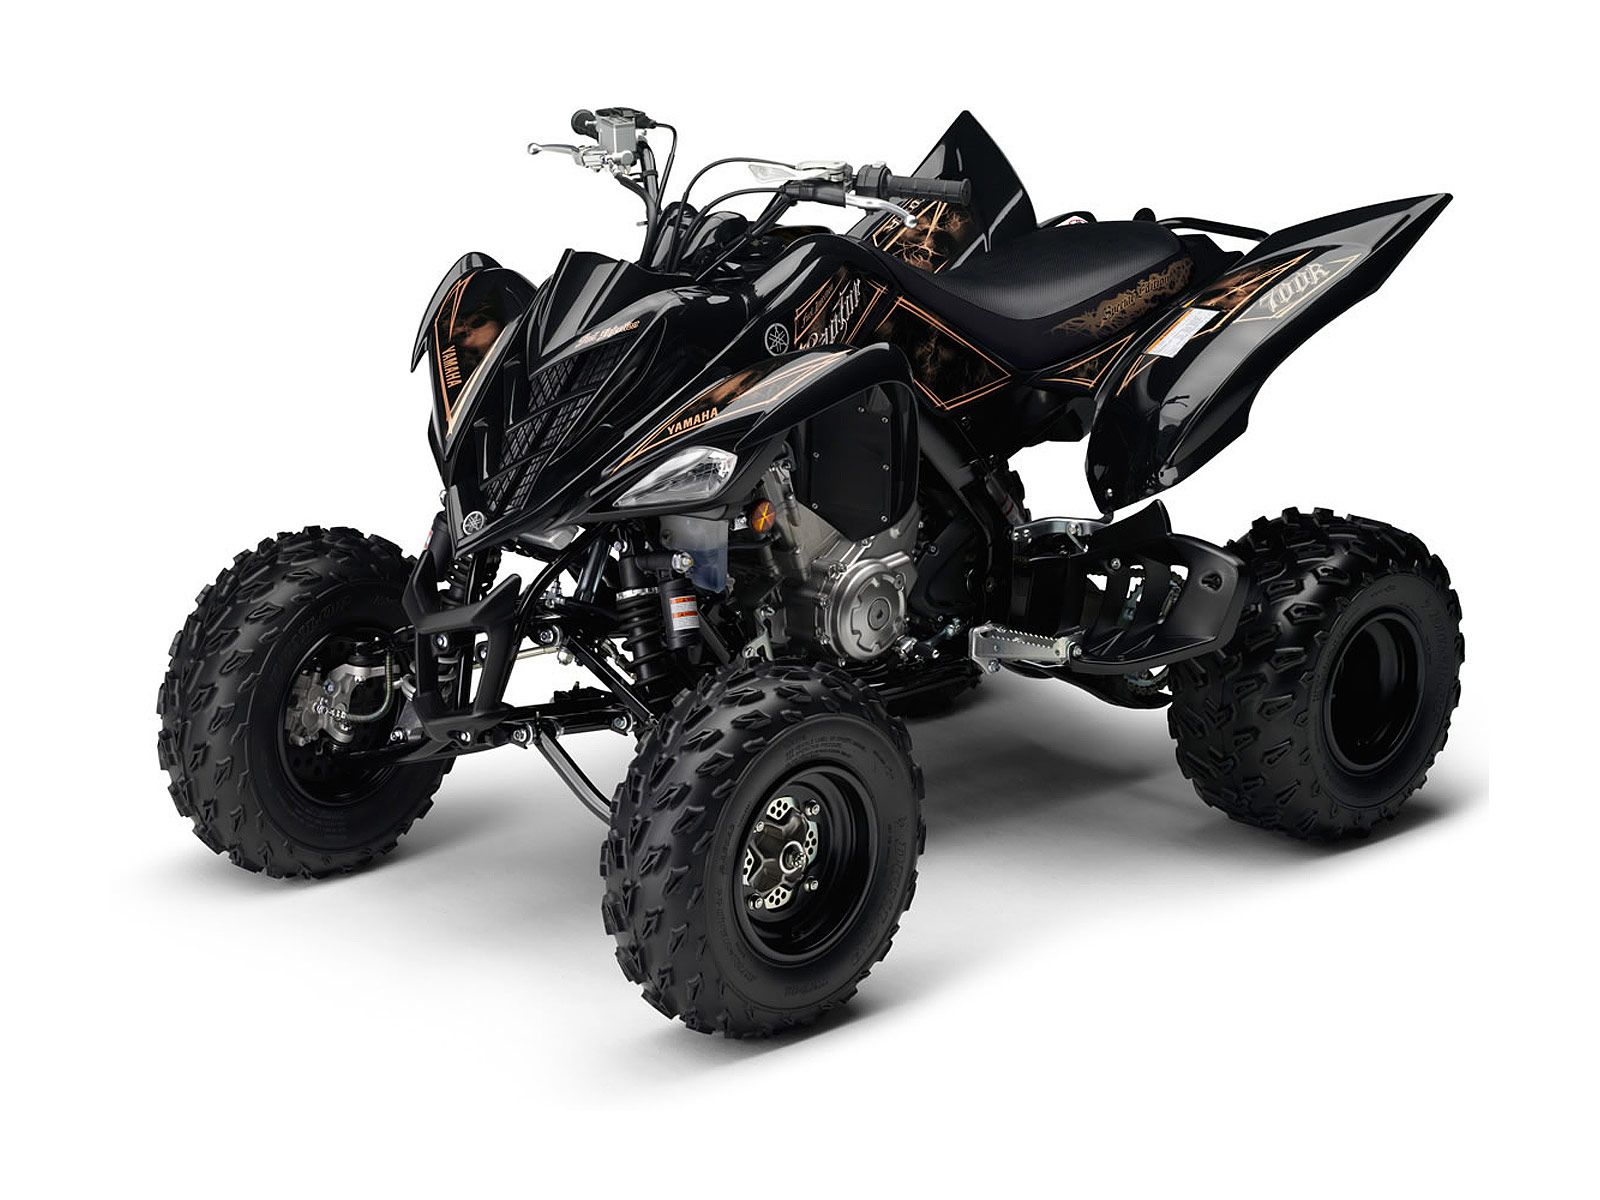 small resolution of yamaha raptor 700r this is my favorite color scheme from the factory moto quad